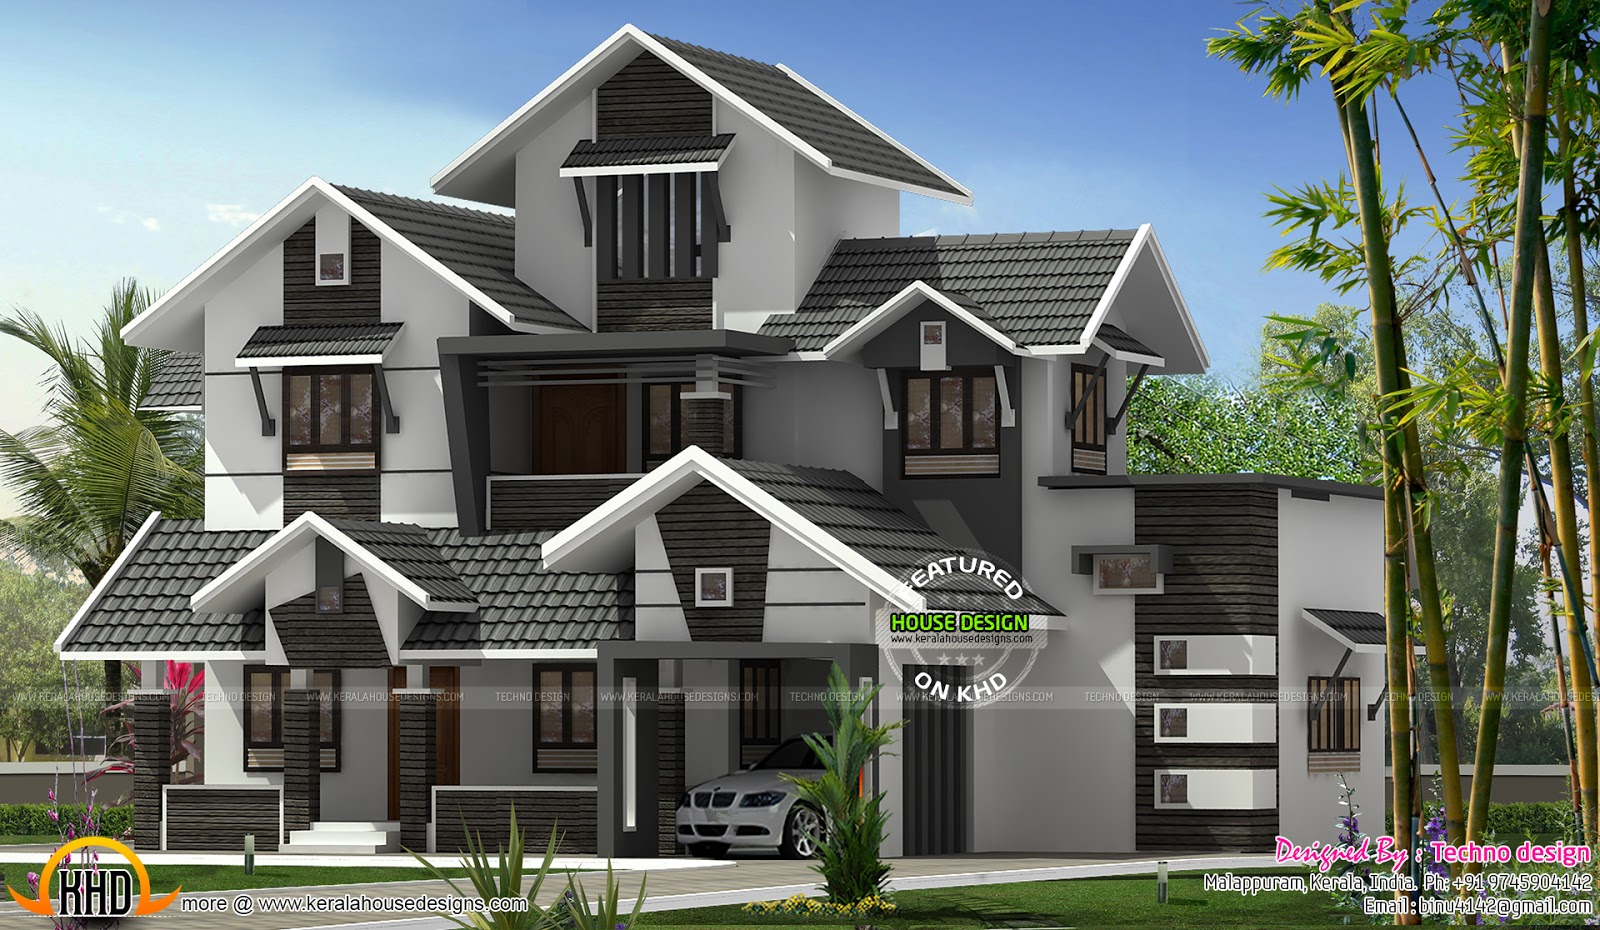 Modern kerala home design kerala home design and floor plans for Modern house in kerala